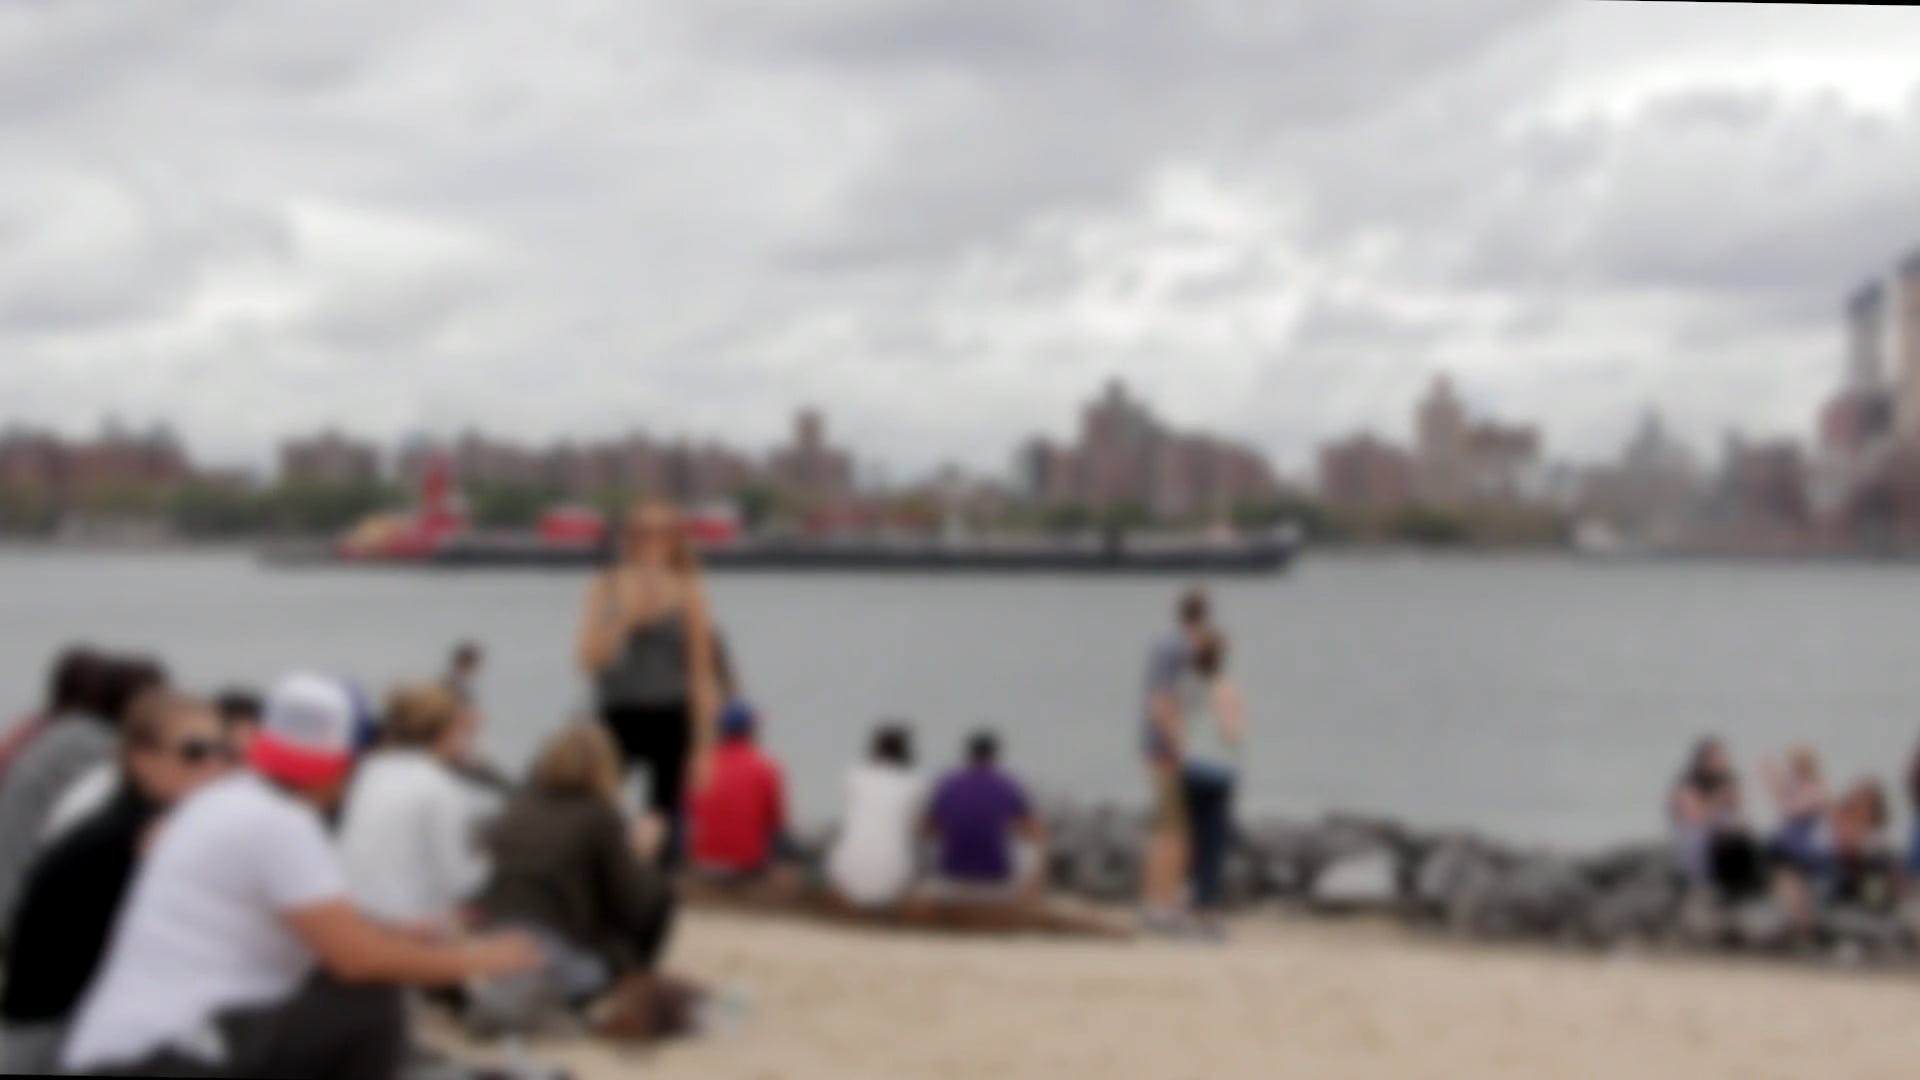 Blurry Footage Of People Near River